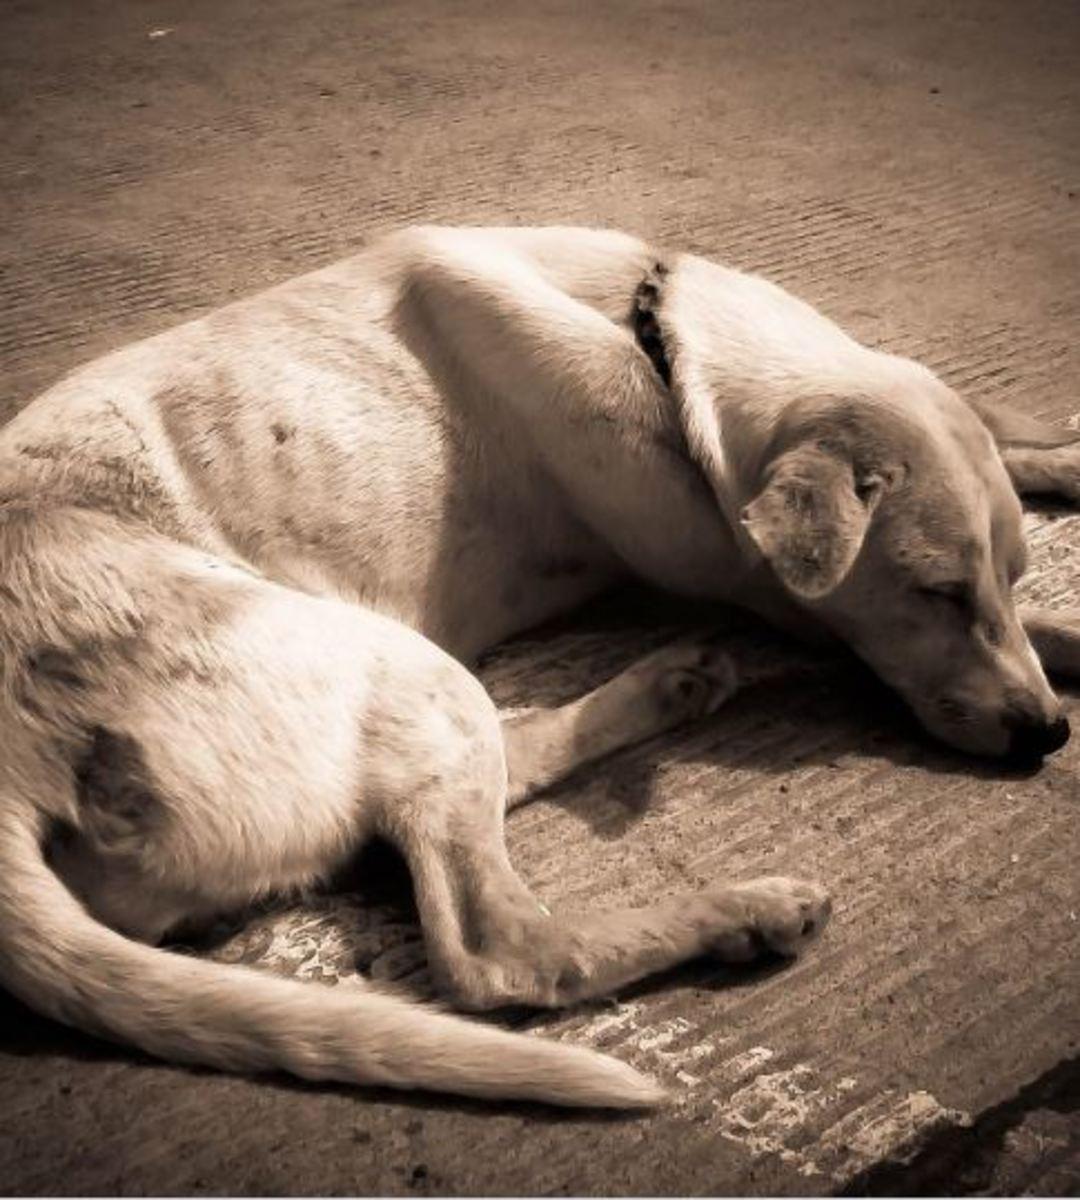 How to tell if a dog is dehydrated?